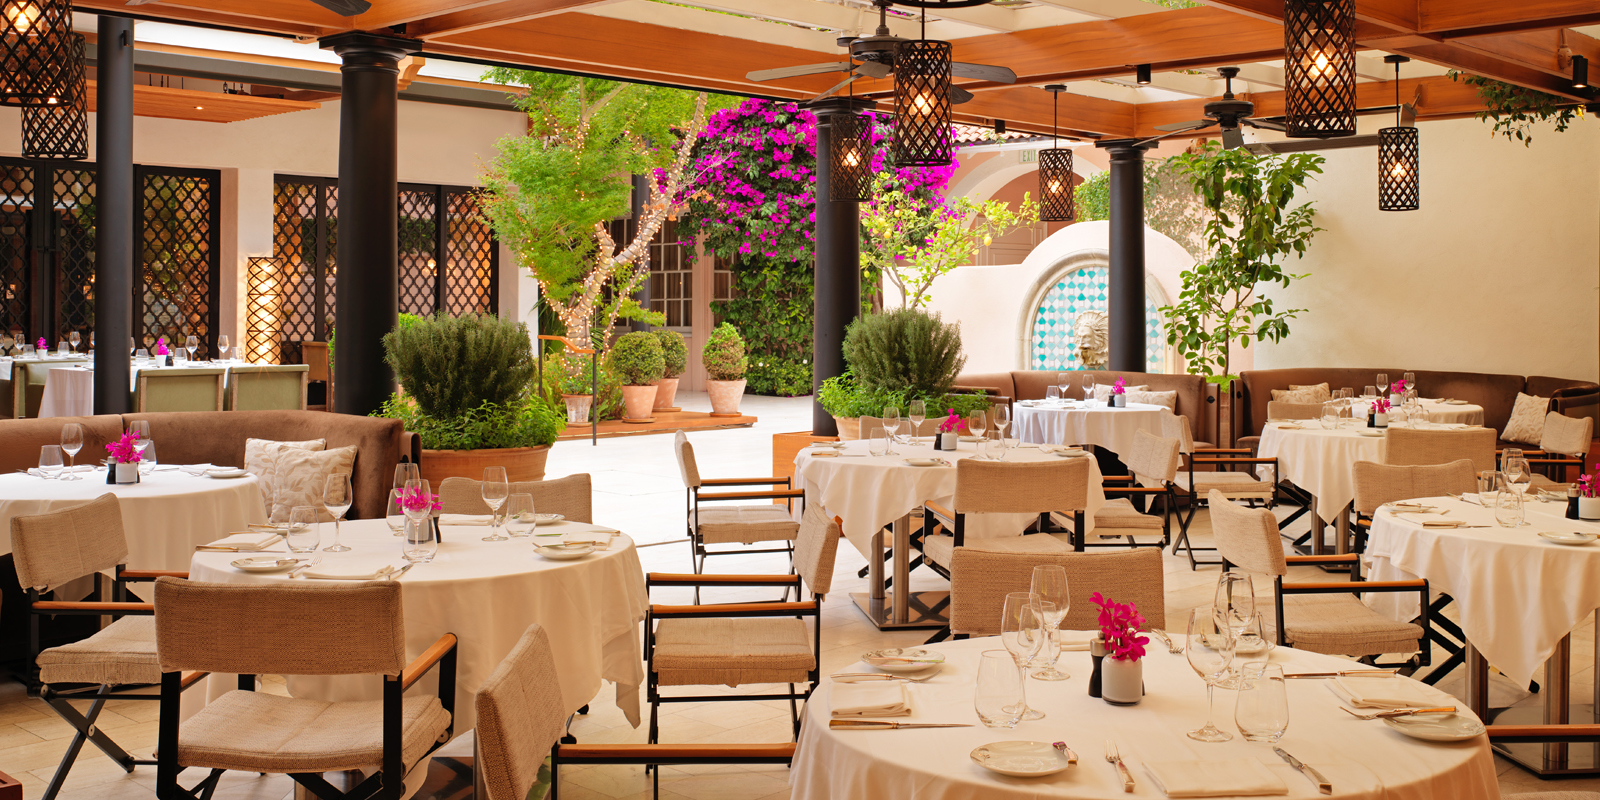 Wolfgang Puck. Photo from Hotel Bel-Air